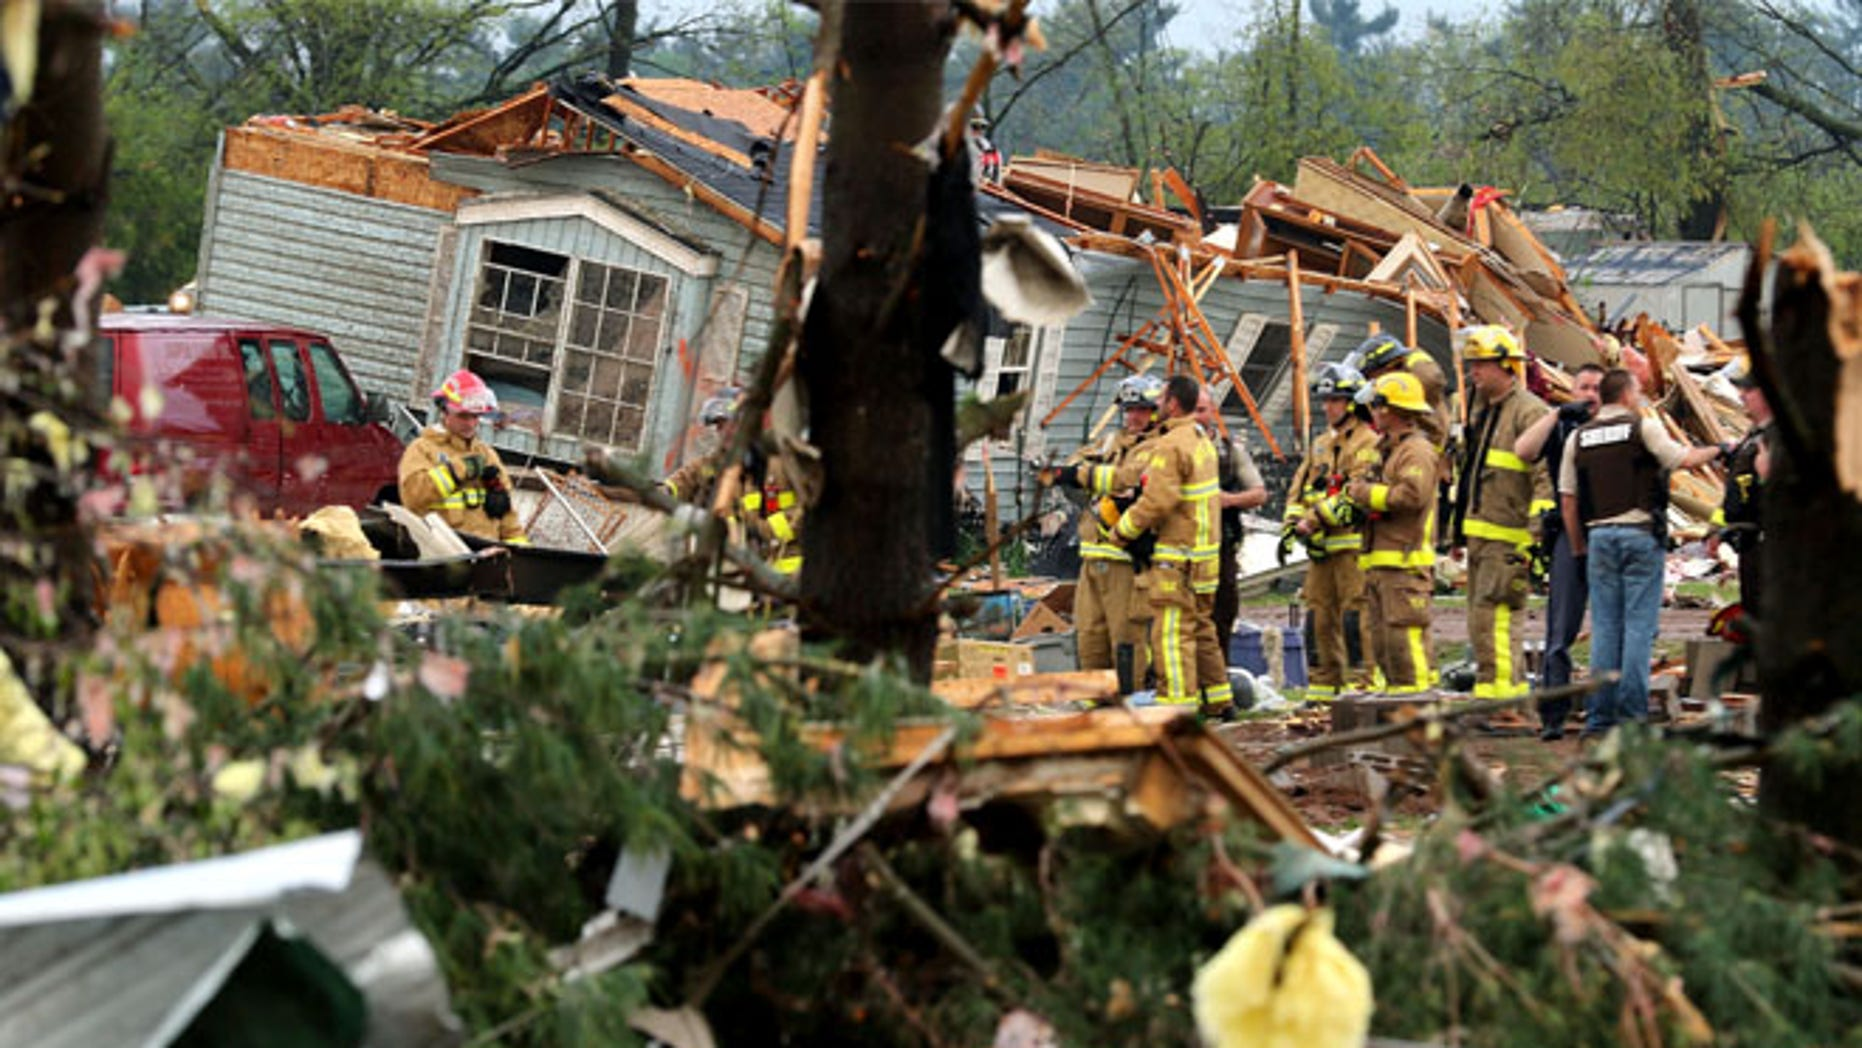 Firefighters work the site of the damage after a tornado ripped through Prairie Lake Estates trailer home park, just north of Chetek, Wis